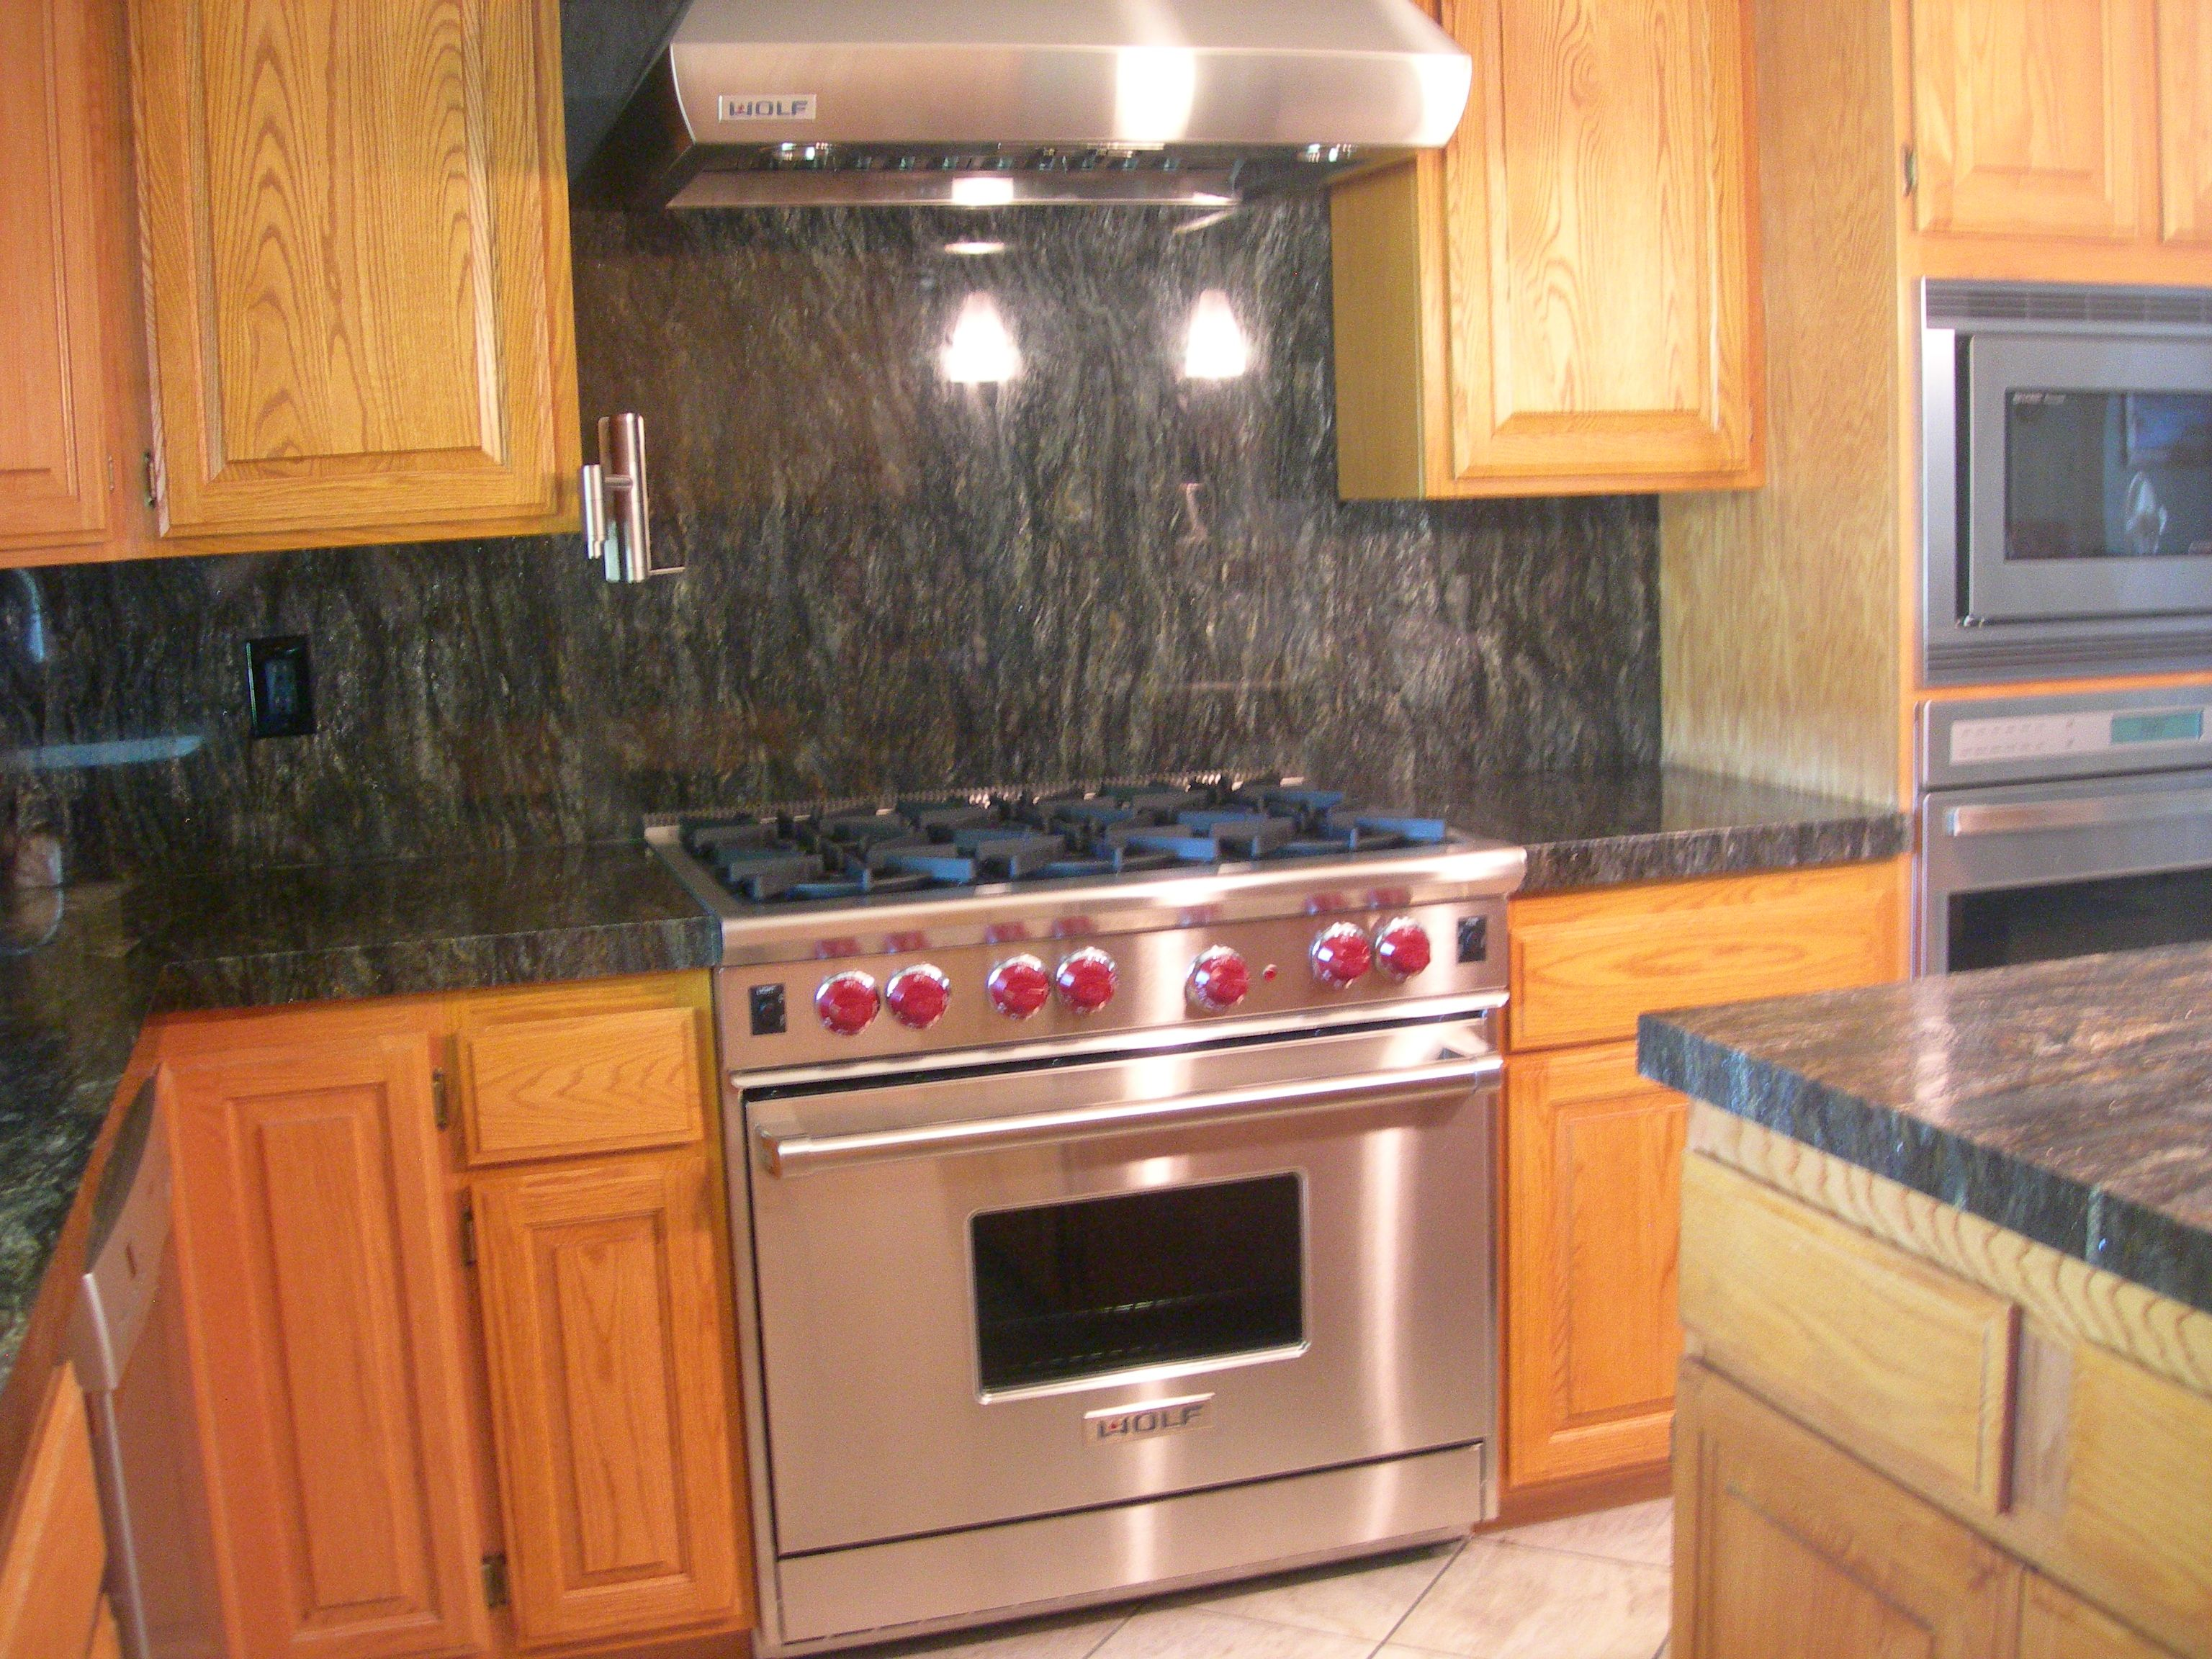 Wolf 36 inch range with hood | my kitchen | Pinterest | Hoods and ...